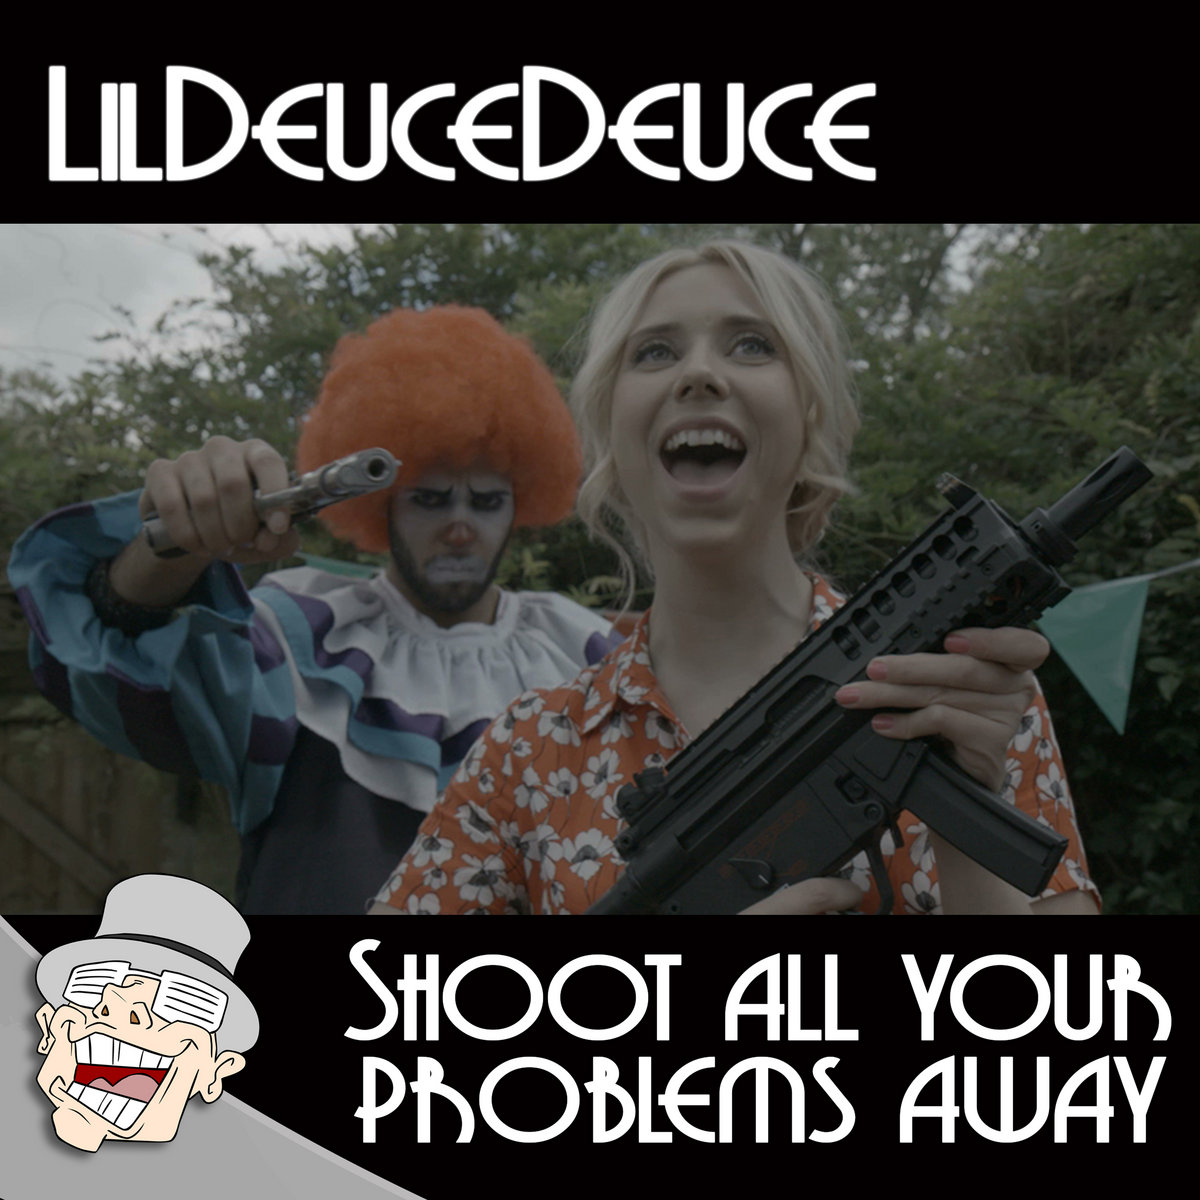 Shoot All Your Problems Away by LilDeuceDeuce